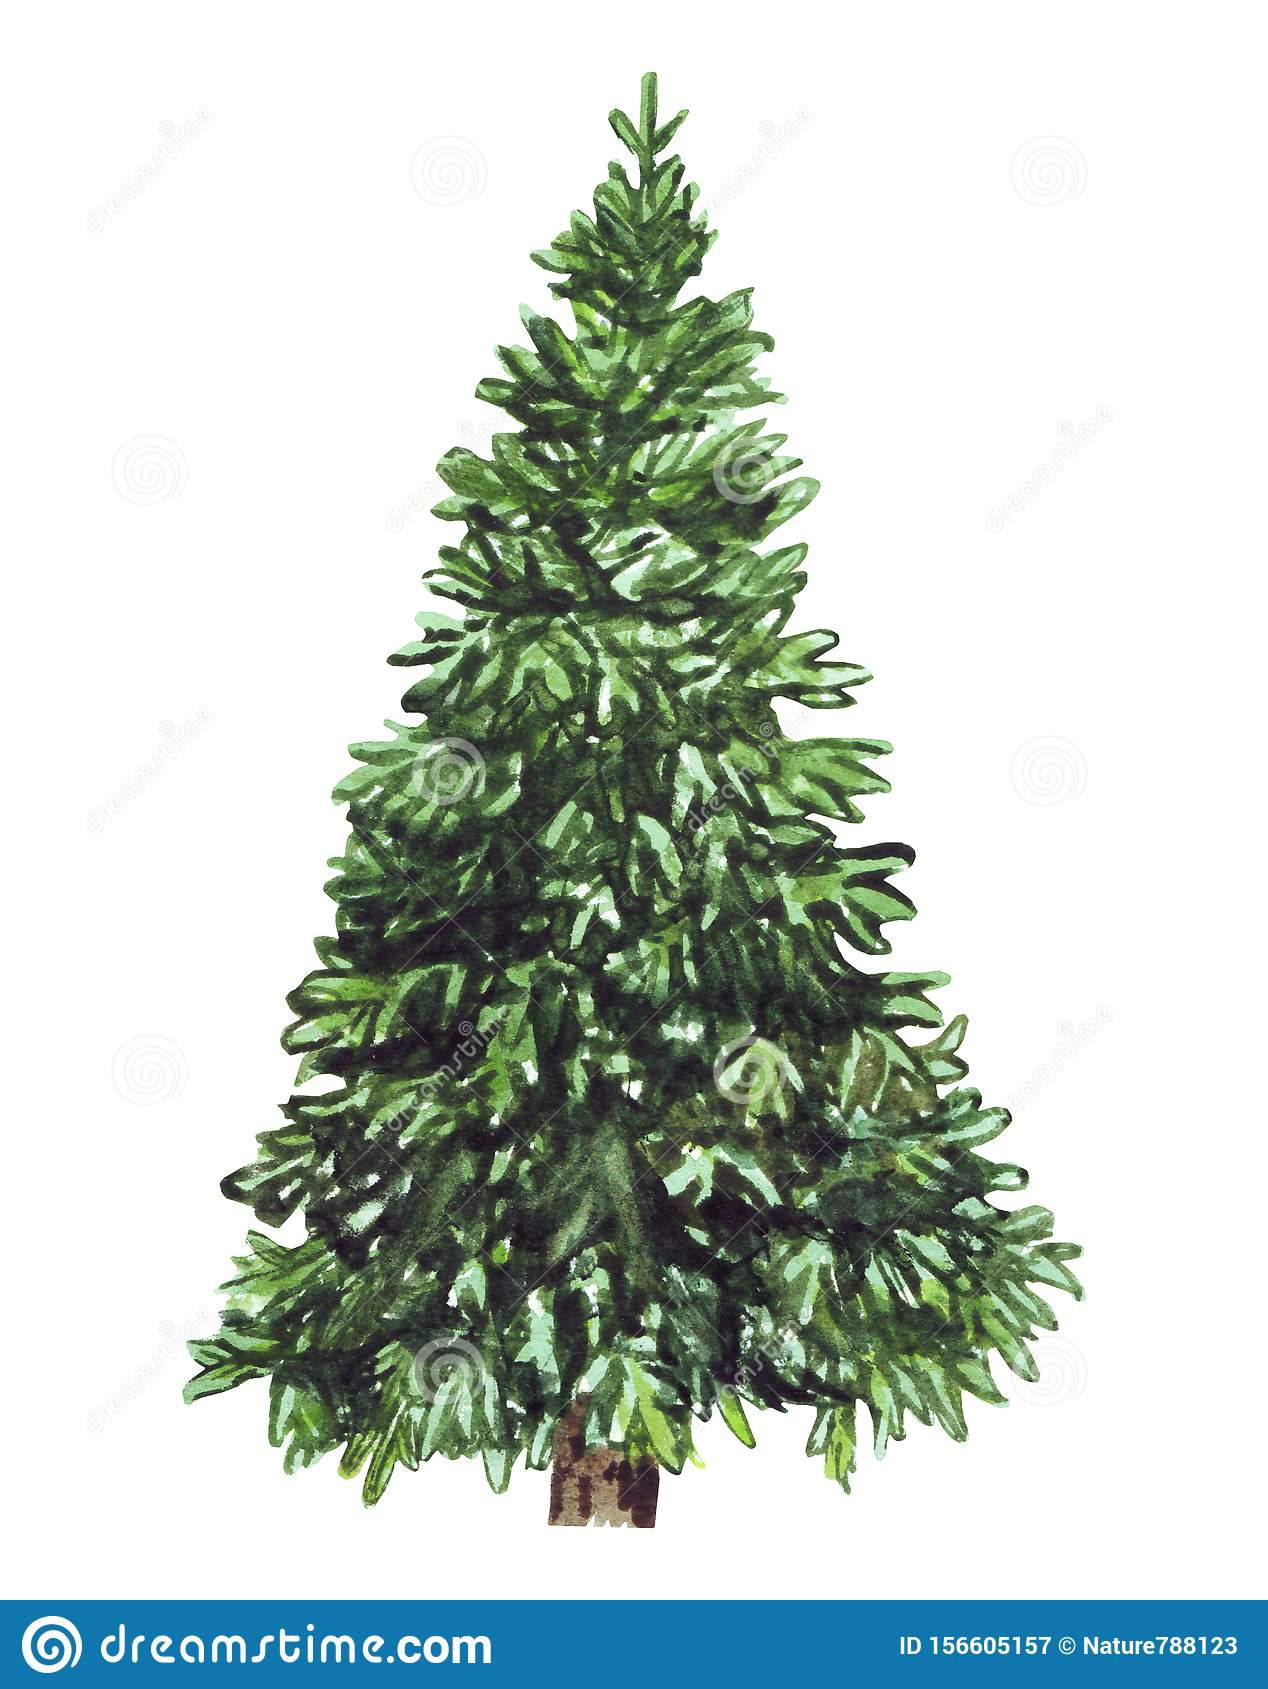 Watercolor green Christmas tree on white background. Isolated hand drawn elements for prints, cards